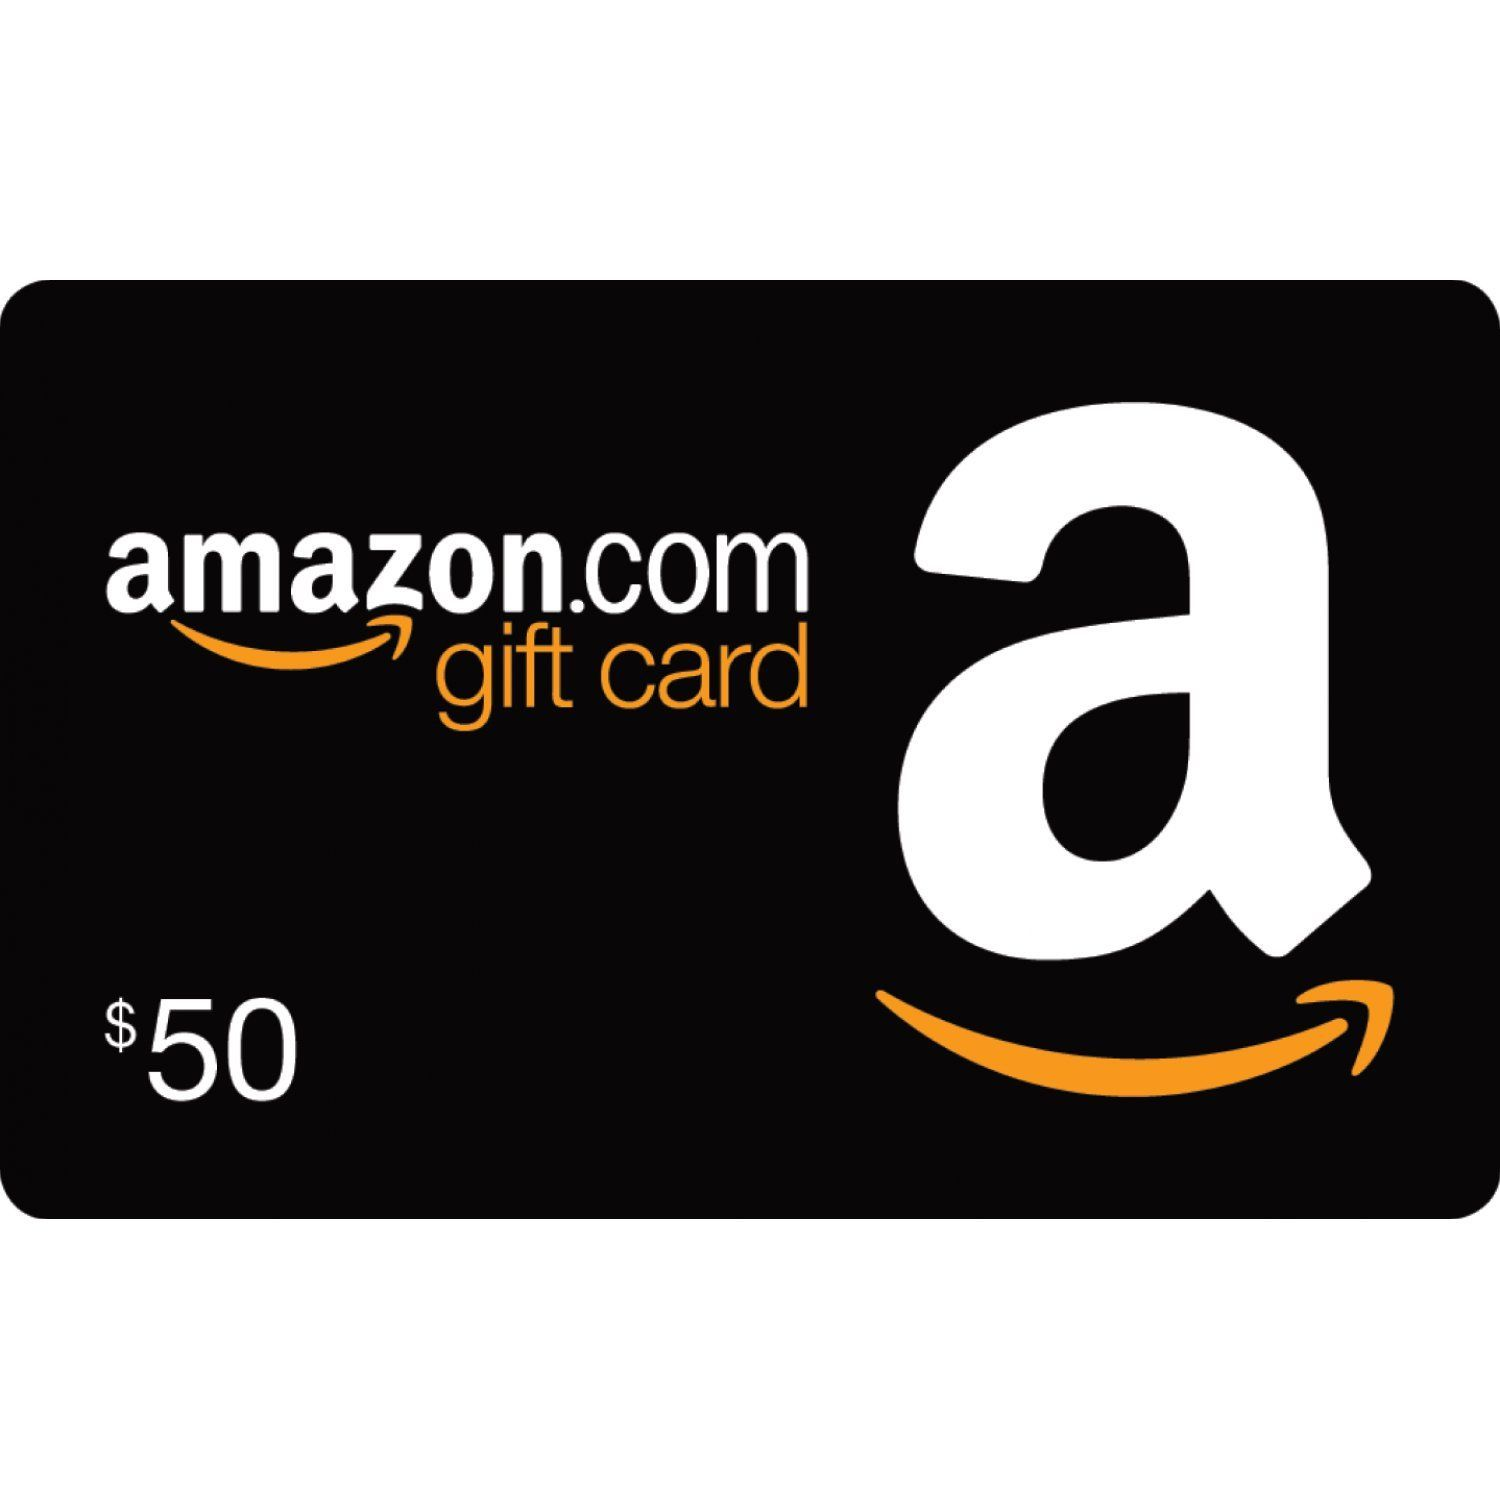 Where Can You Buy Amazon Gift Cards Amazon Gift Card Free Amazon Gift Cards Itunes Gift Cards